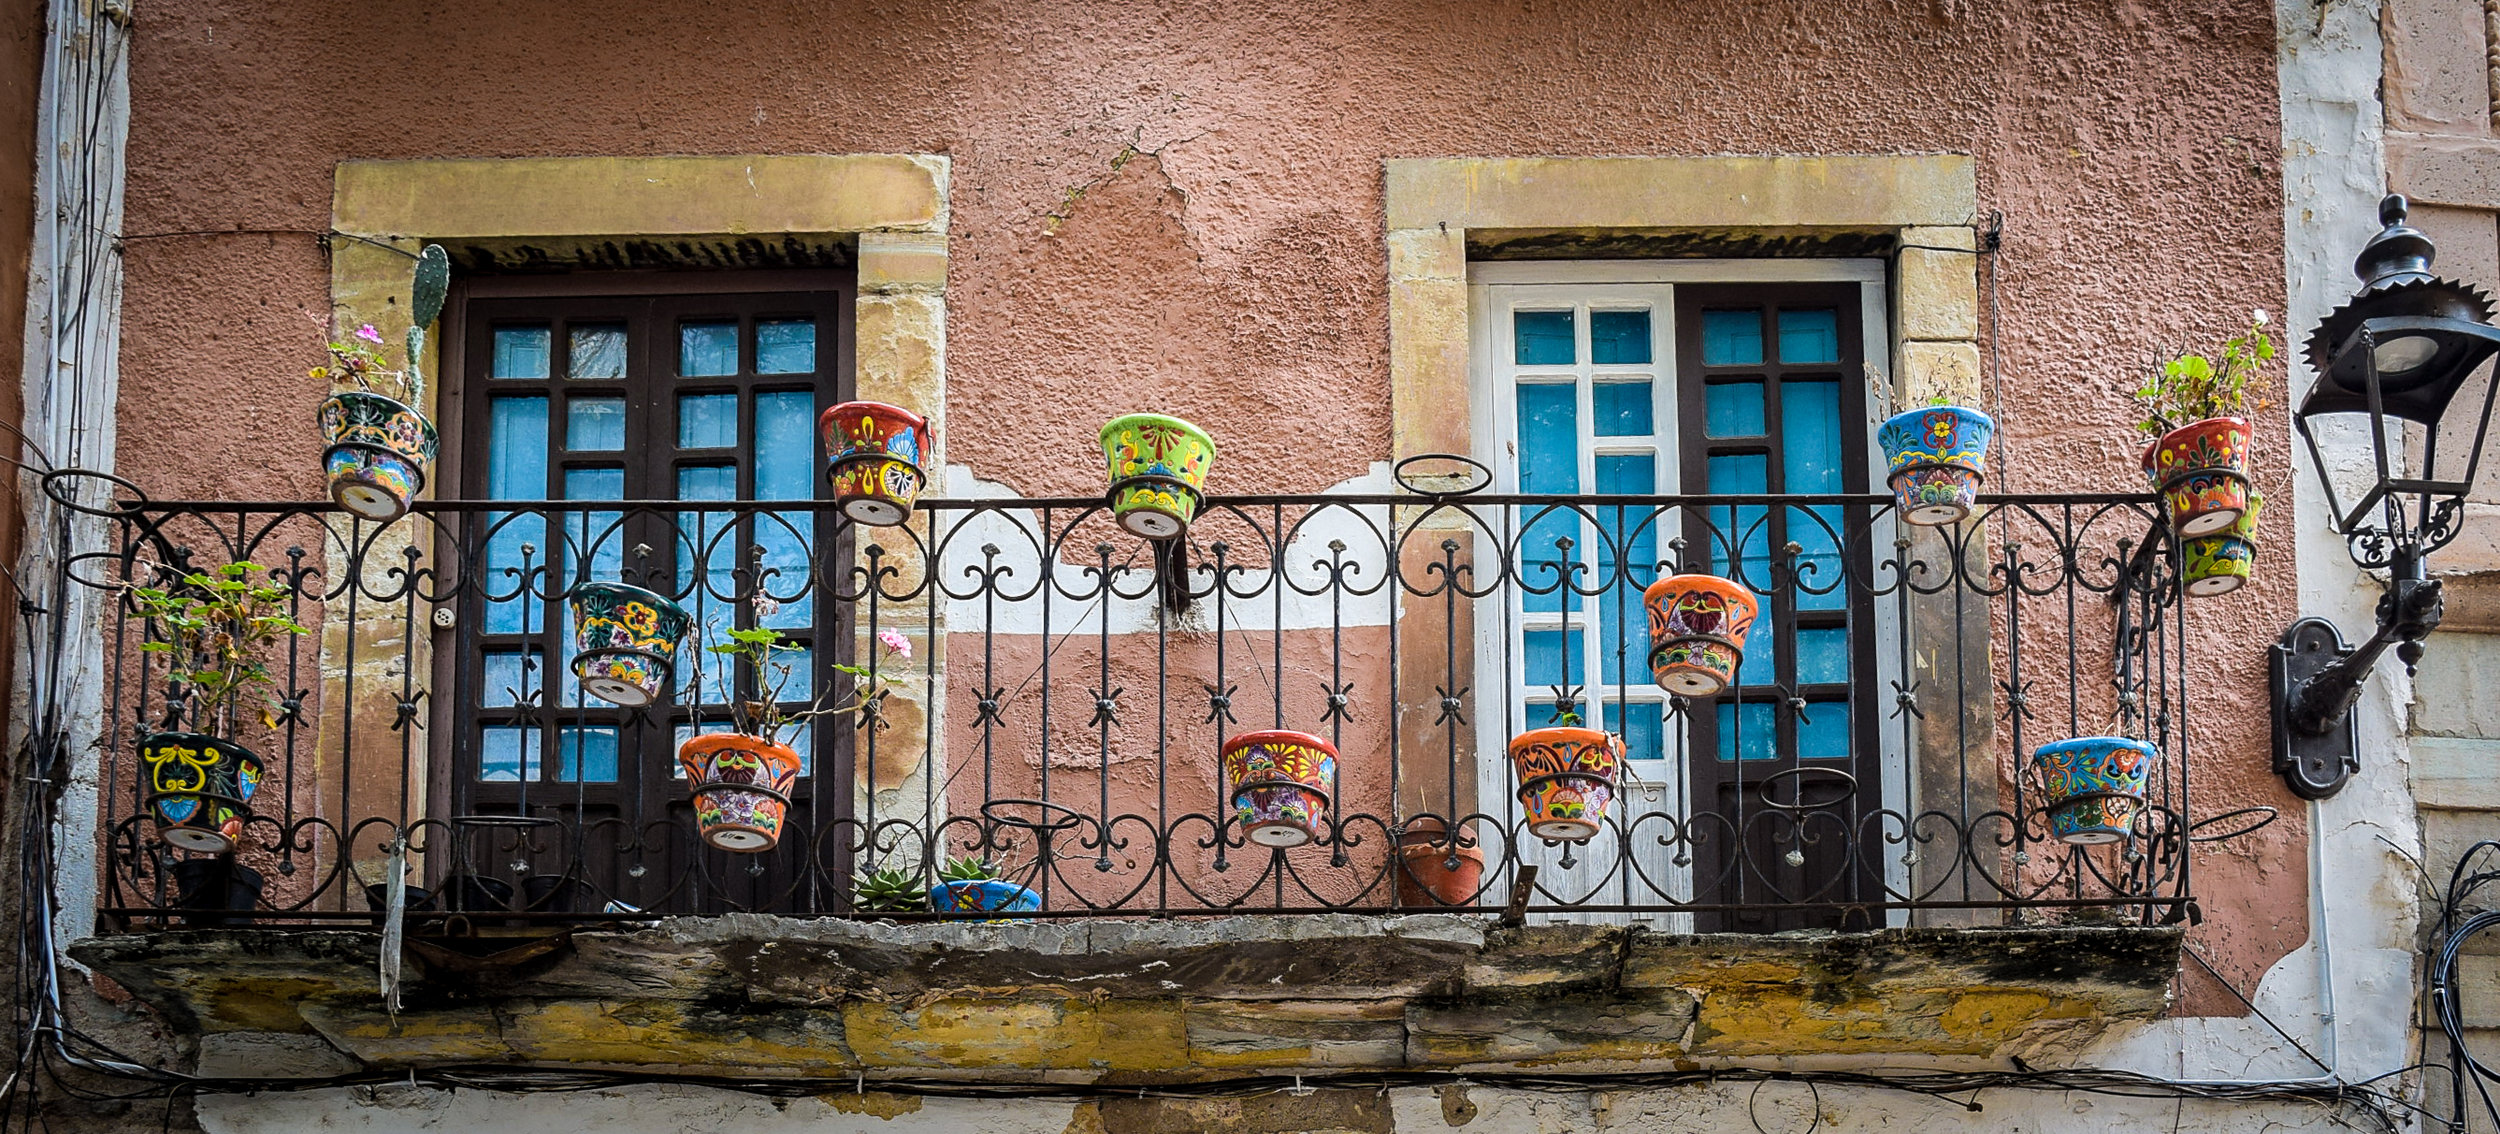 Colorful flowerpots on a balcony in Guanajuato